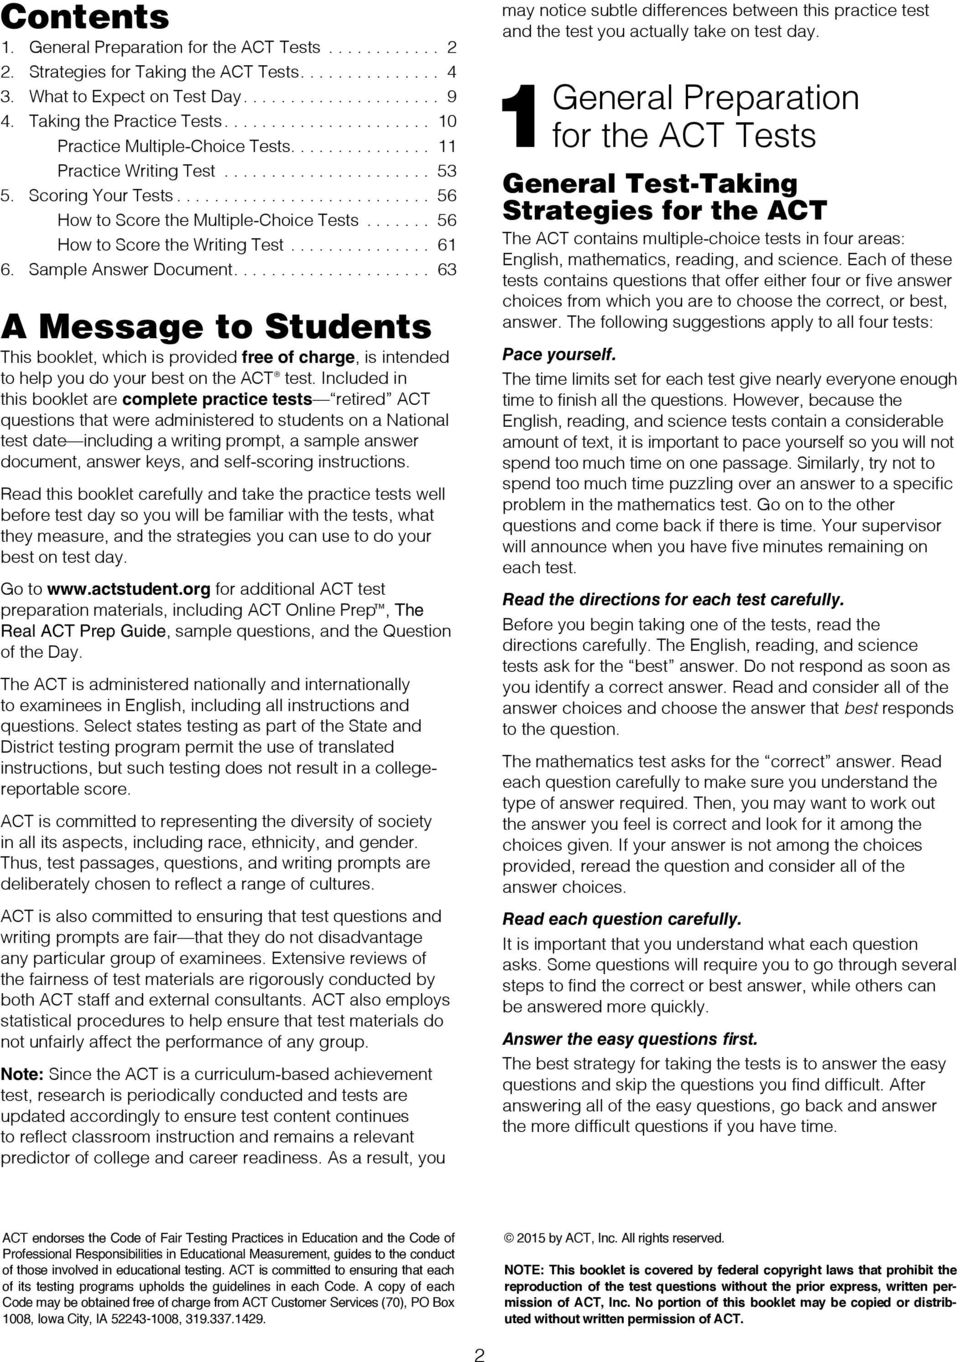 Preparing for the ACT Test - PDF